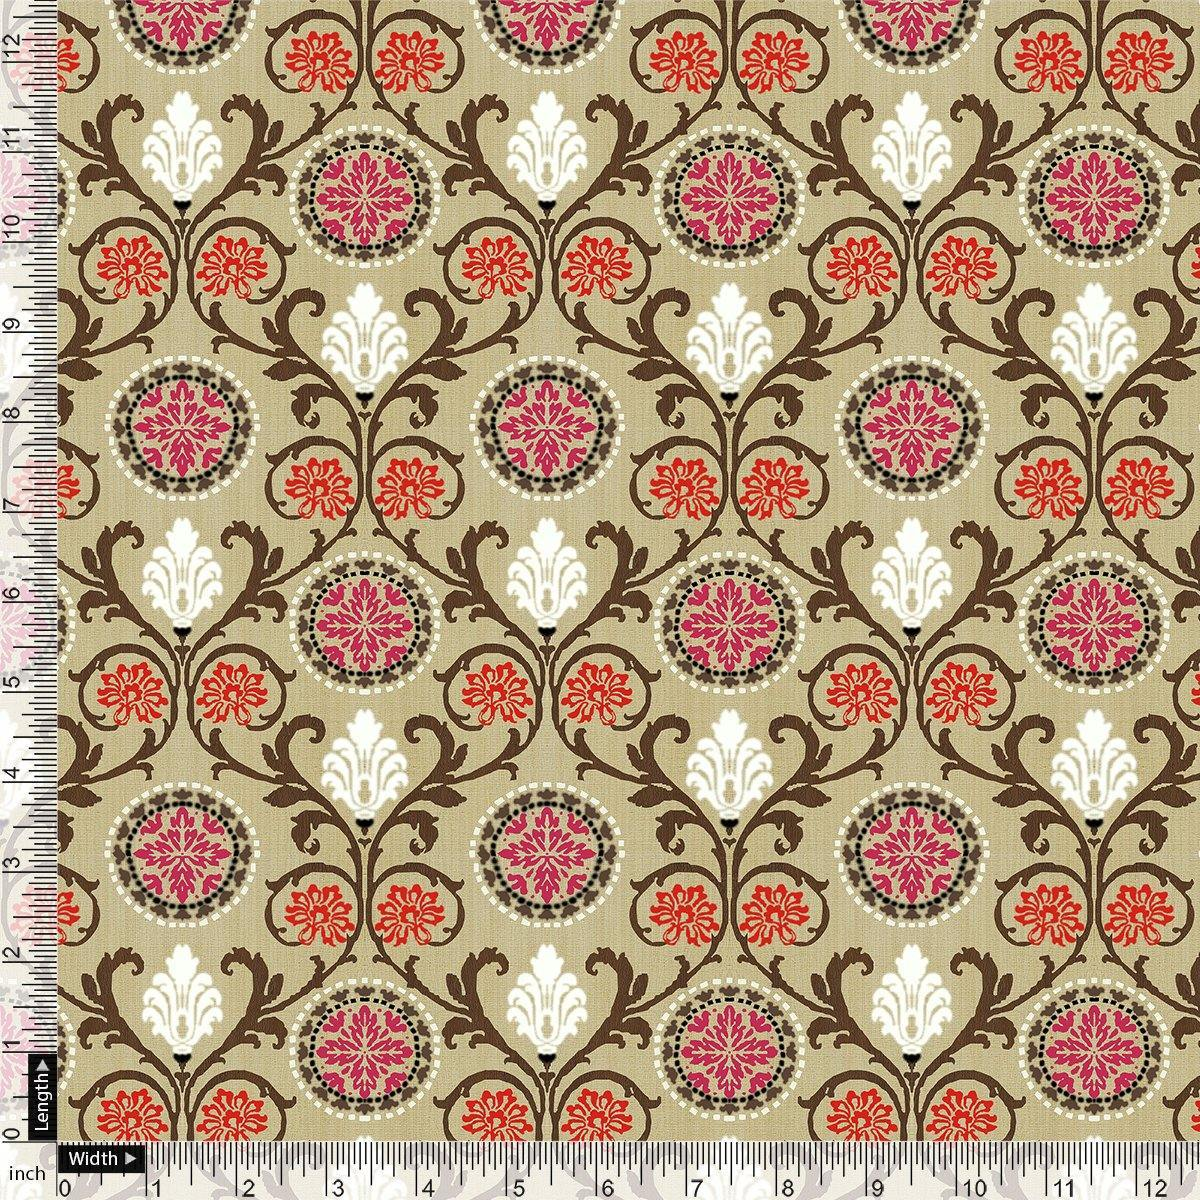 Decorative Damask Digital Printed Fabric - FAB VOGUE Studio. Shop Fabric @ www.fabvoguestudio.com